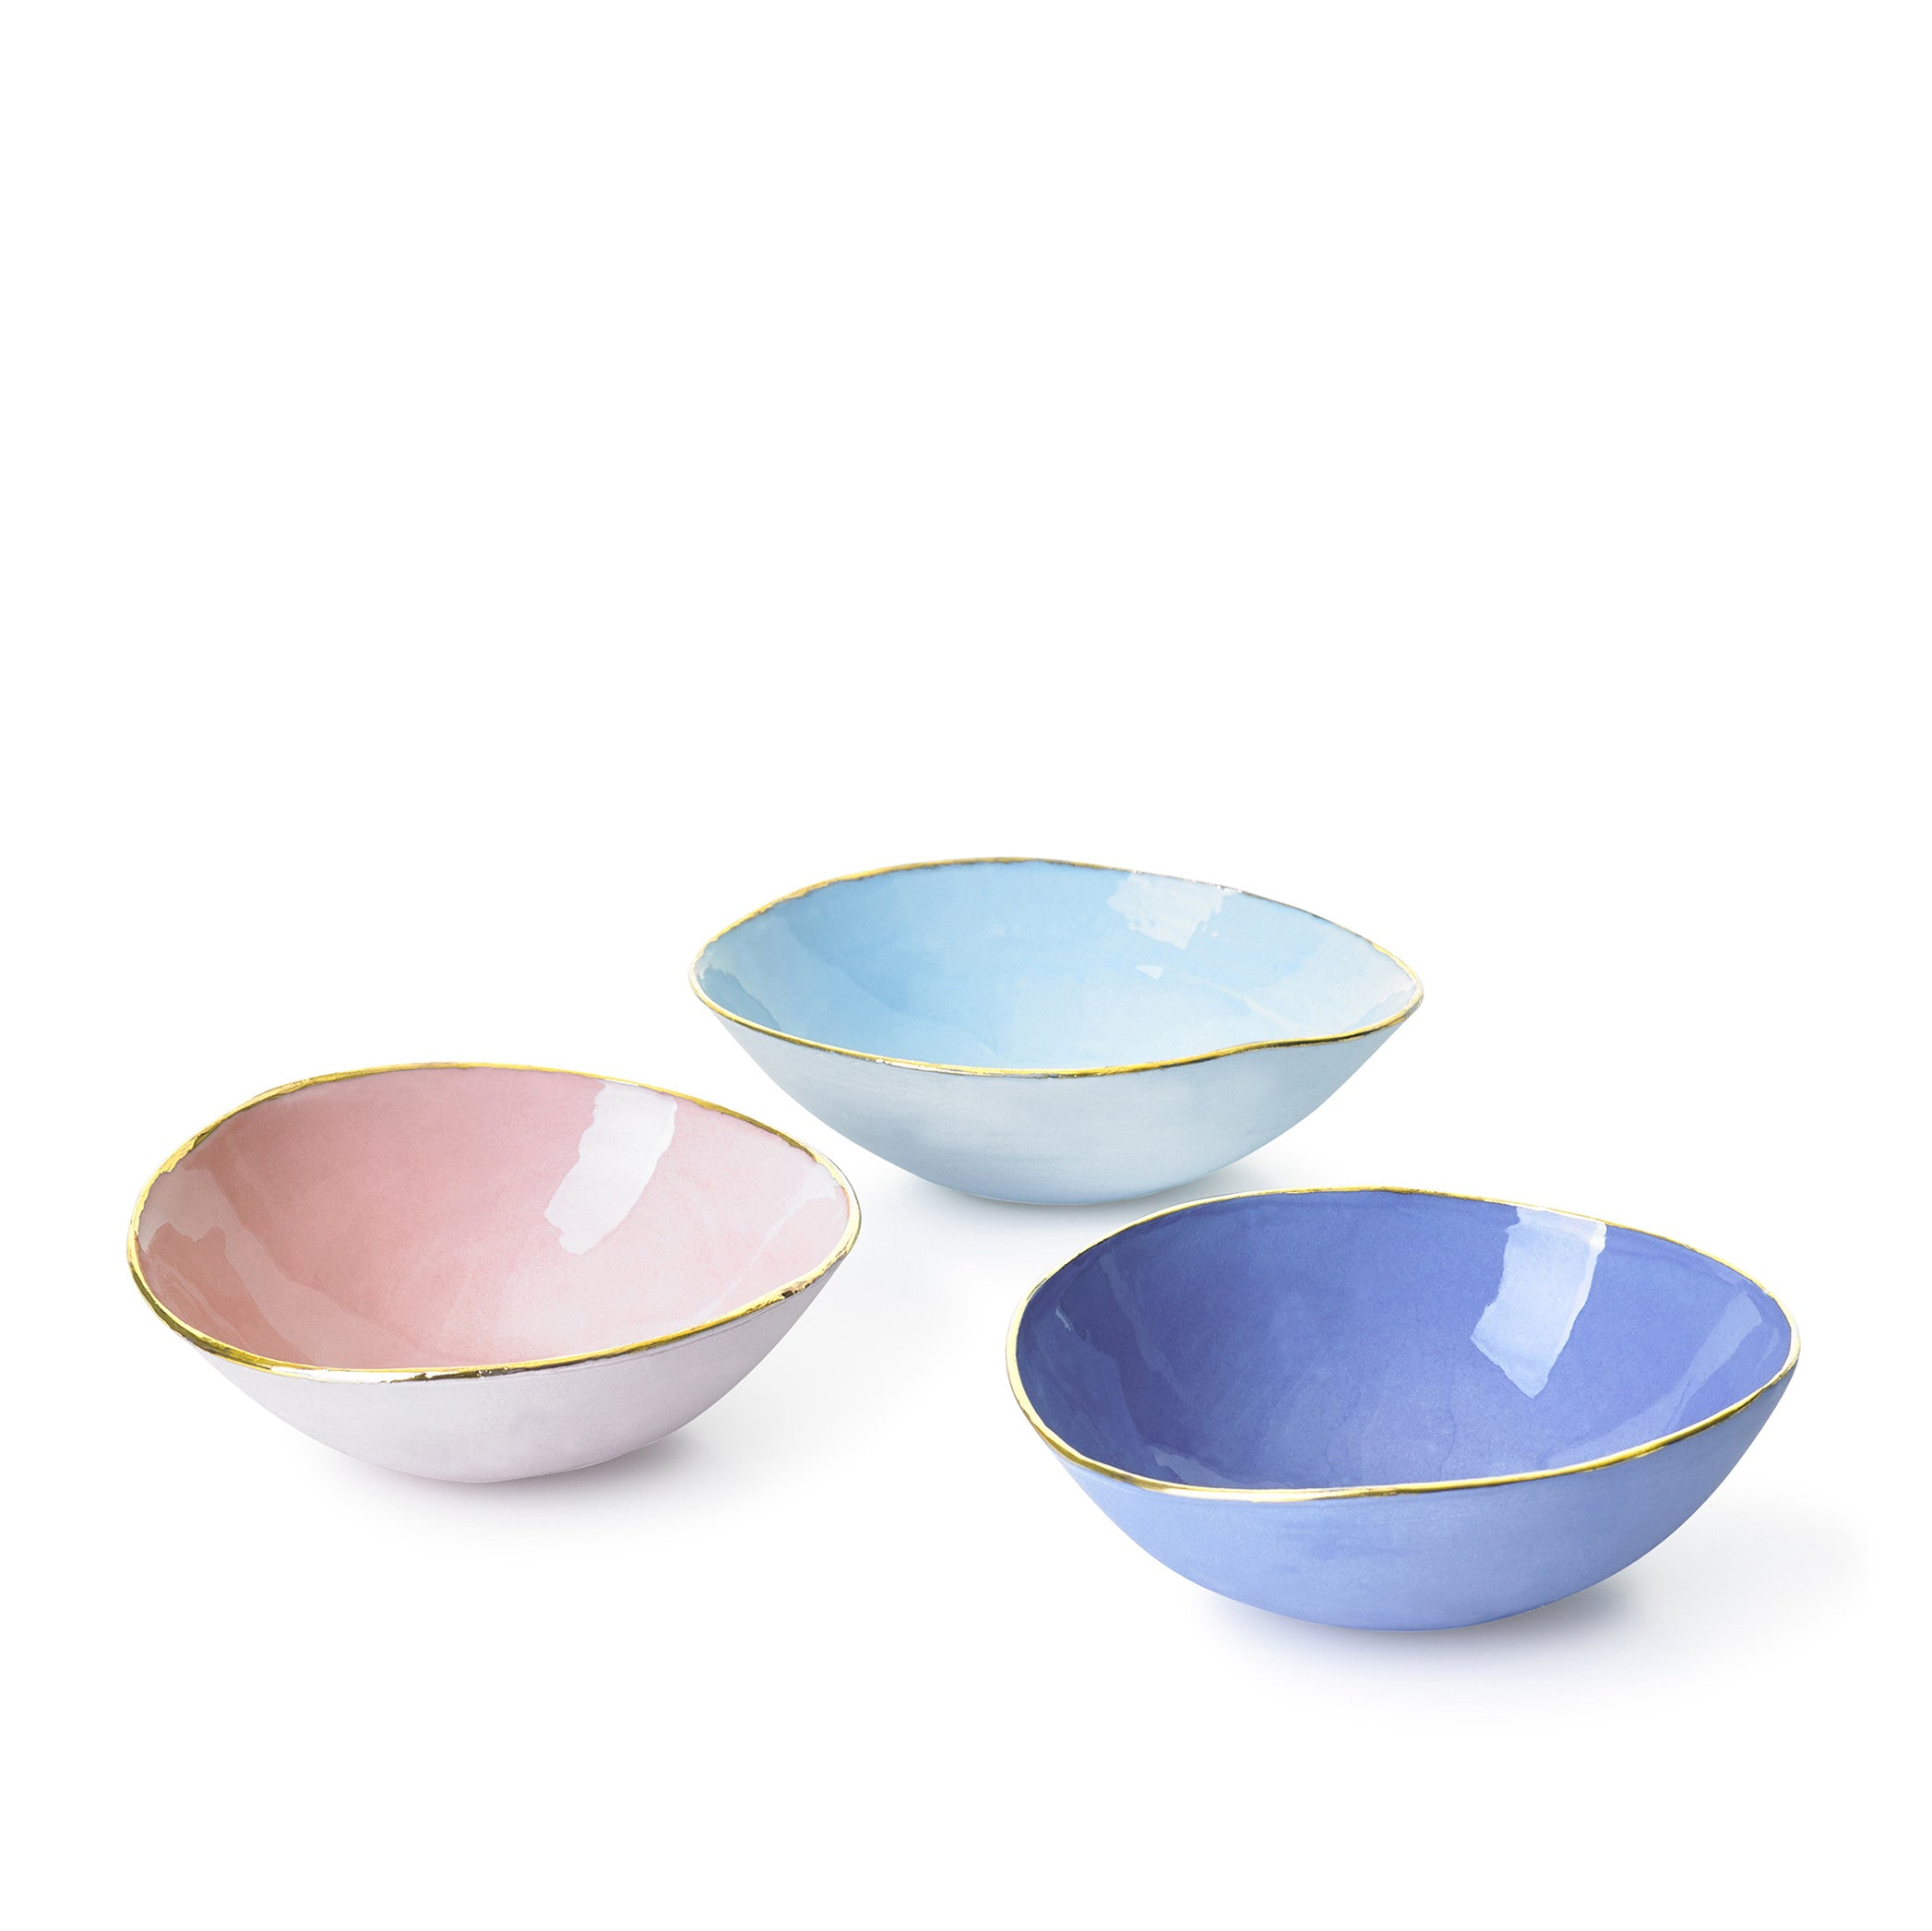 Full Painted Pink Ceramic Bowl with Gold Rim, 10cm